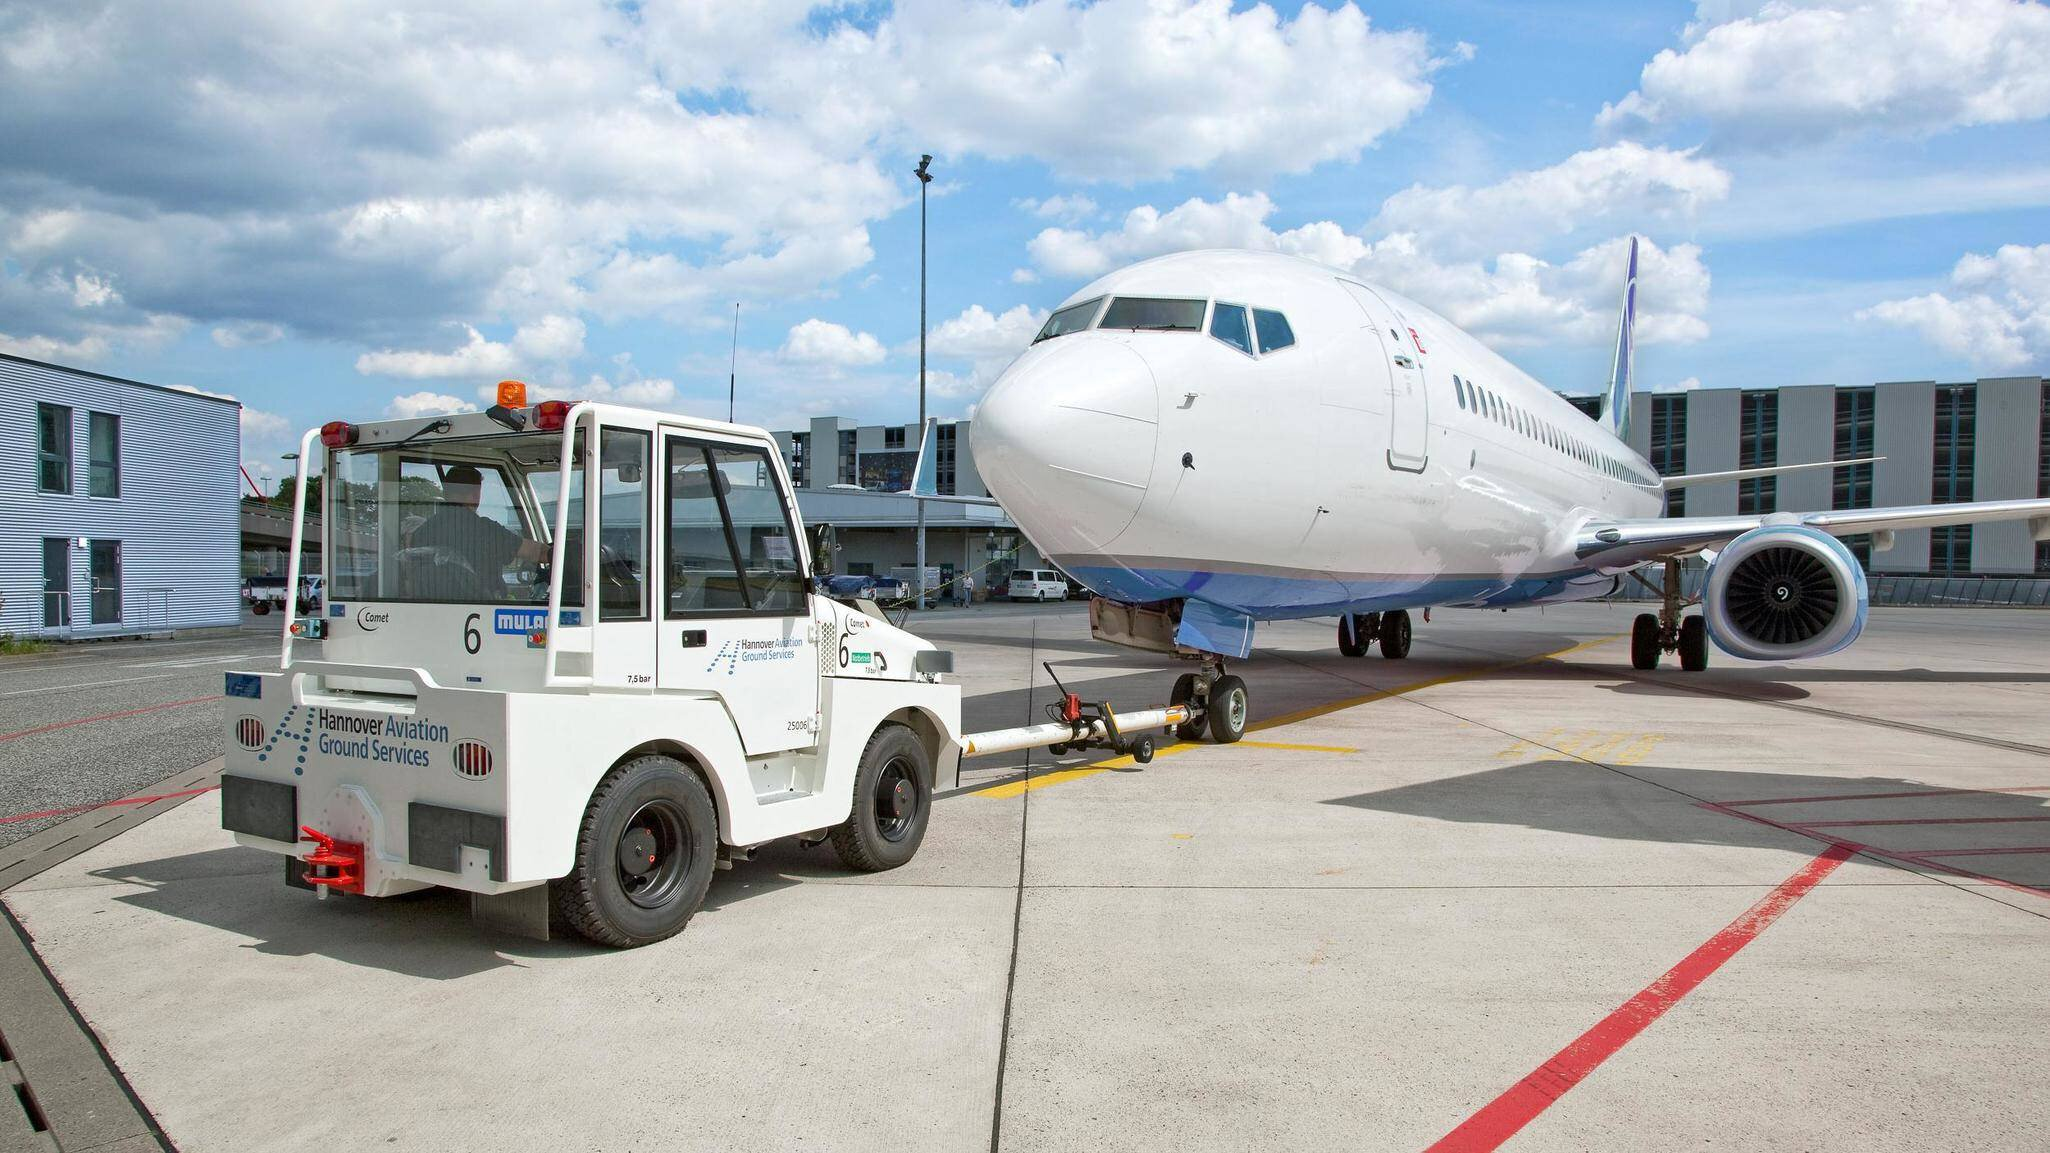 Gallery image 3 - Airport tractor MULAG Comet 12 pushback